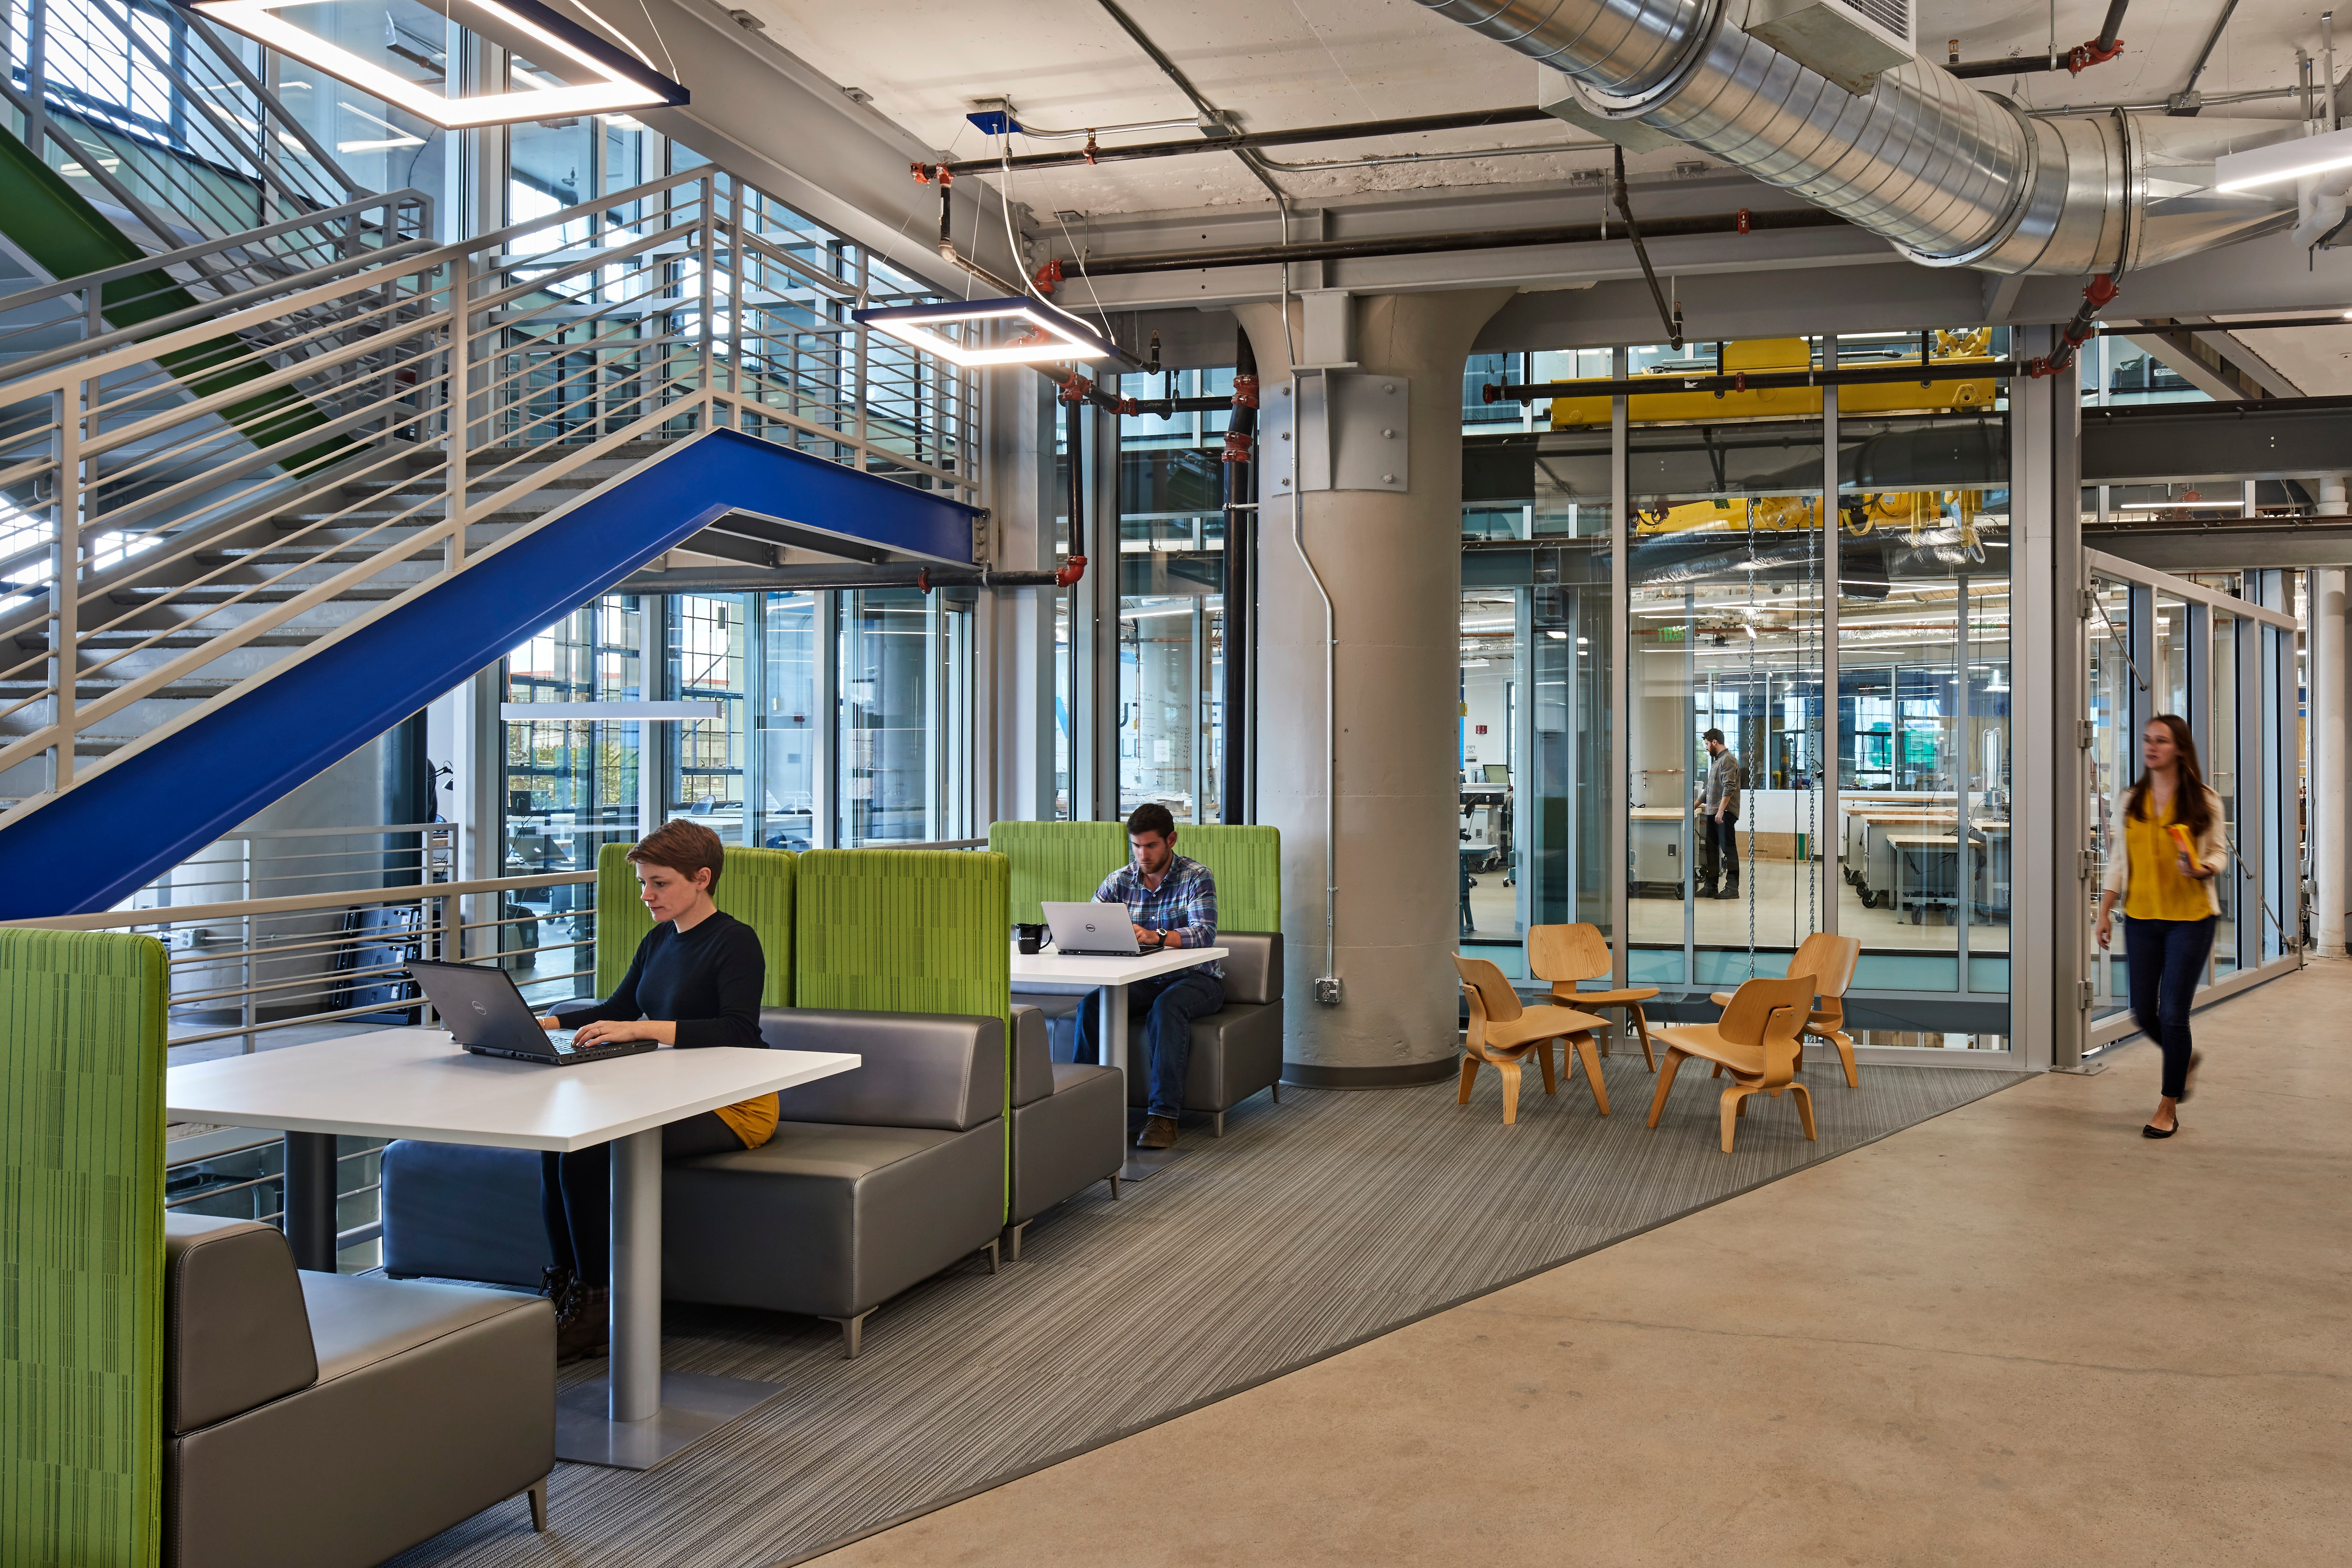 dublin office space. autodesk makes software for people who make things dublin office space a